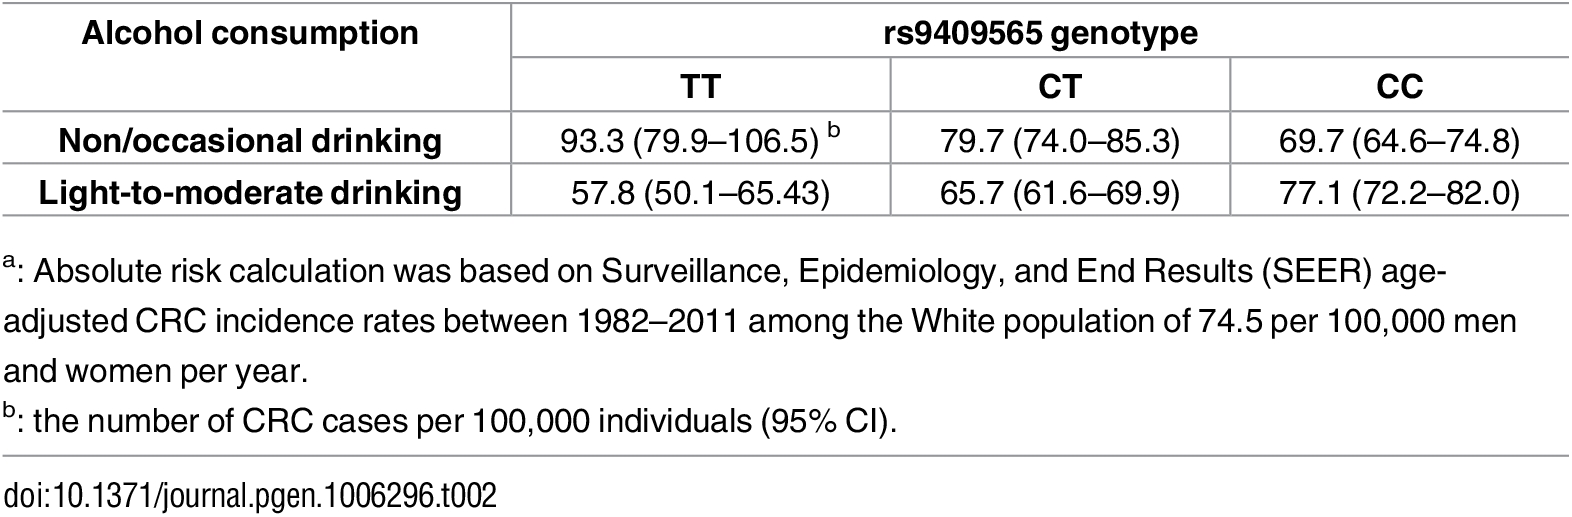 Absolute risk<em class=&quot;ref&quot;><sup>a</sup></em> of CRC for alcohol consumption among individuals with different genotypes of rs9409565.